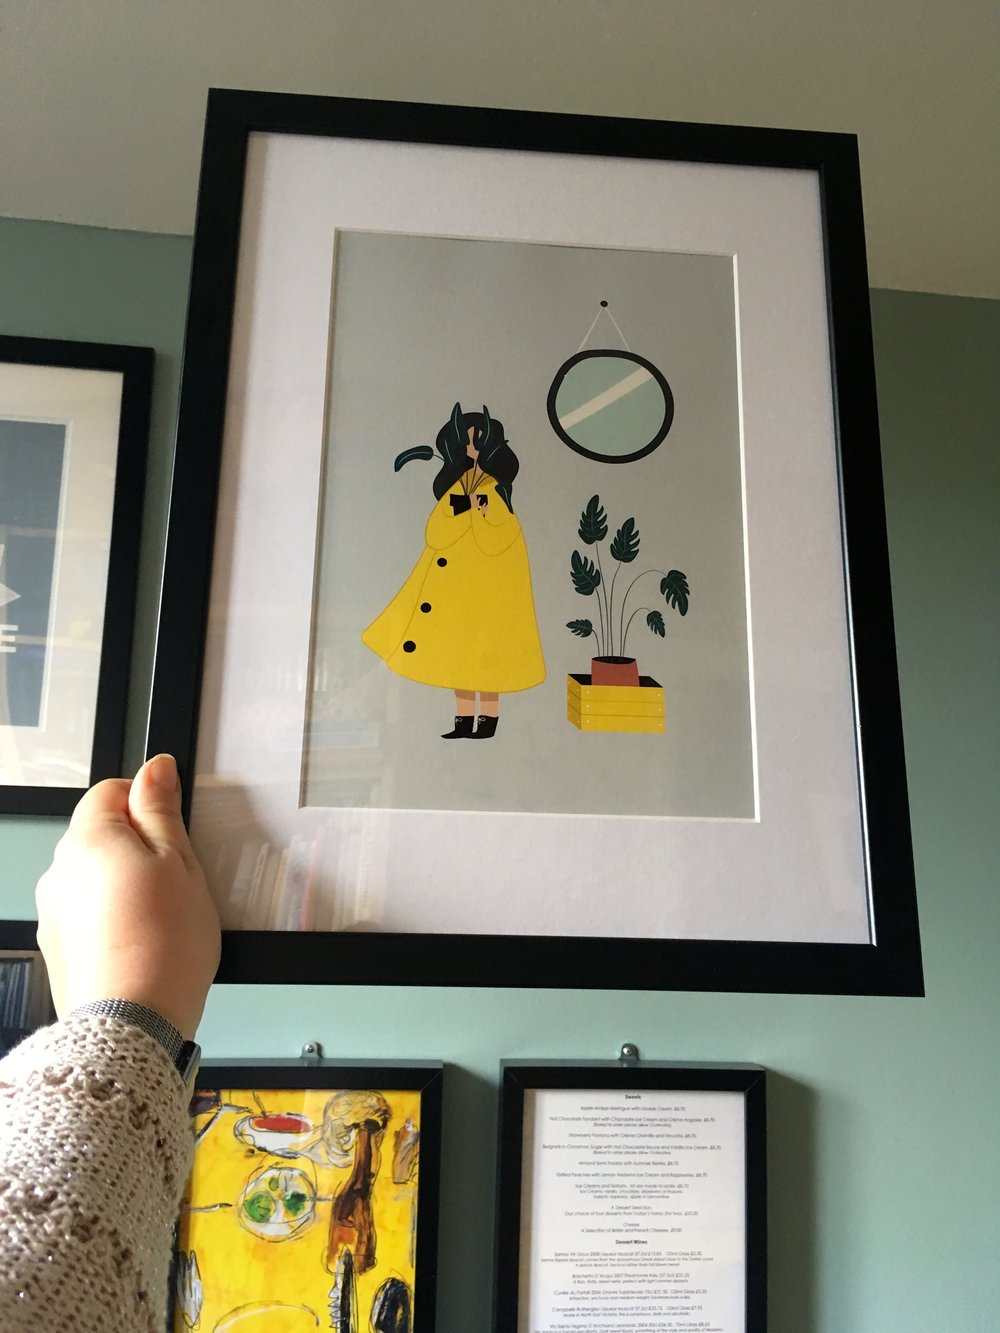 /l This print by Mode prints is destined for my gallery wall - doesn't it work well?